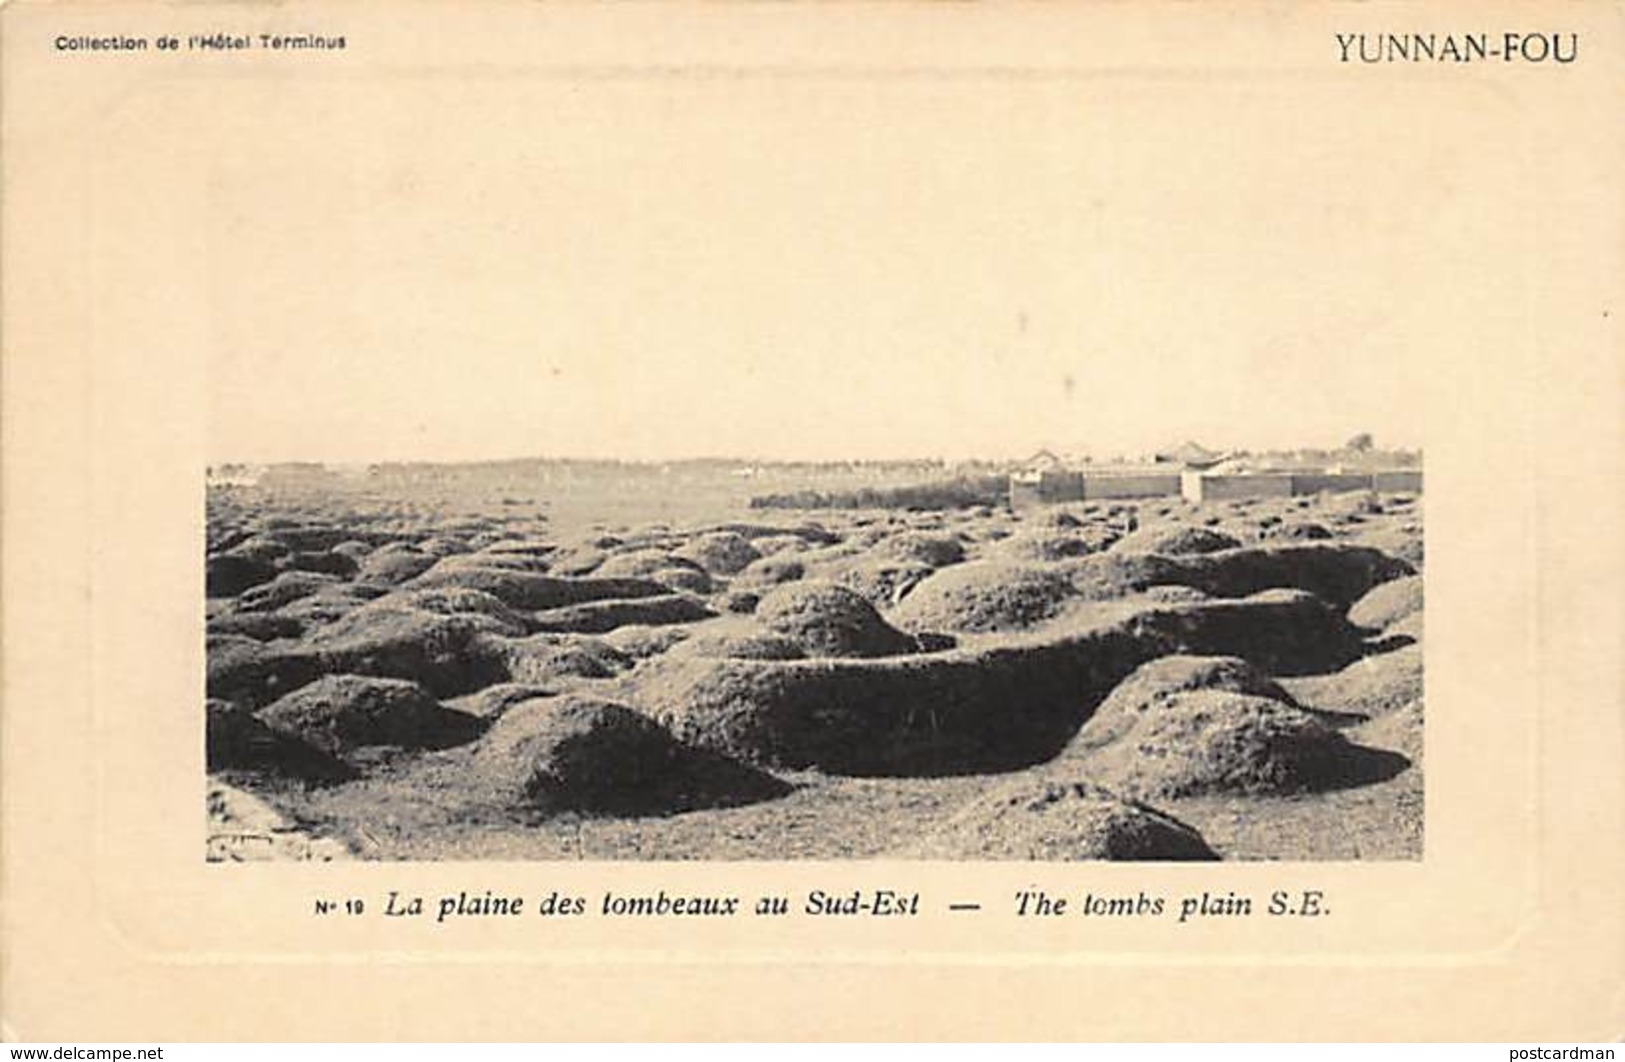 China - YUNNAN FU Kunming - The Tombs In The South East Plain - Publ. Hotel Terminus 19. - Chine